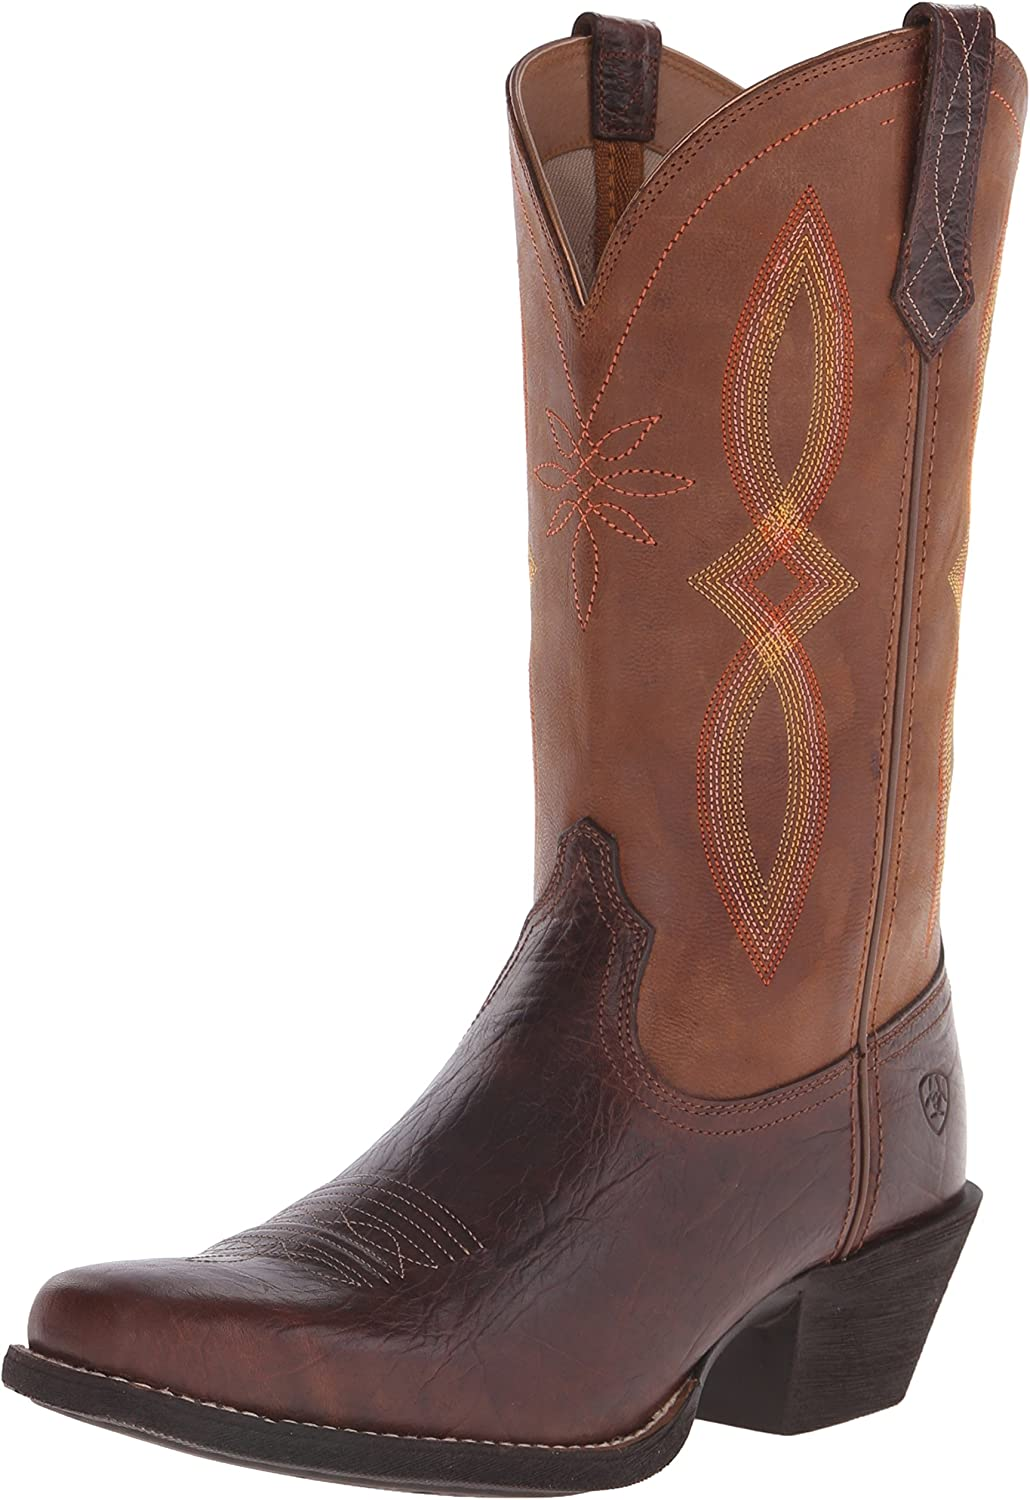 Ariat Women's Round Up Narrow Square Toe II Western Cowboy Boot Brown